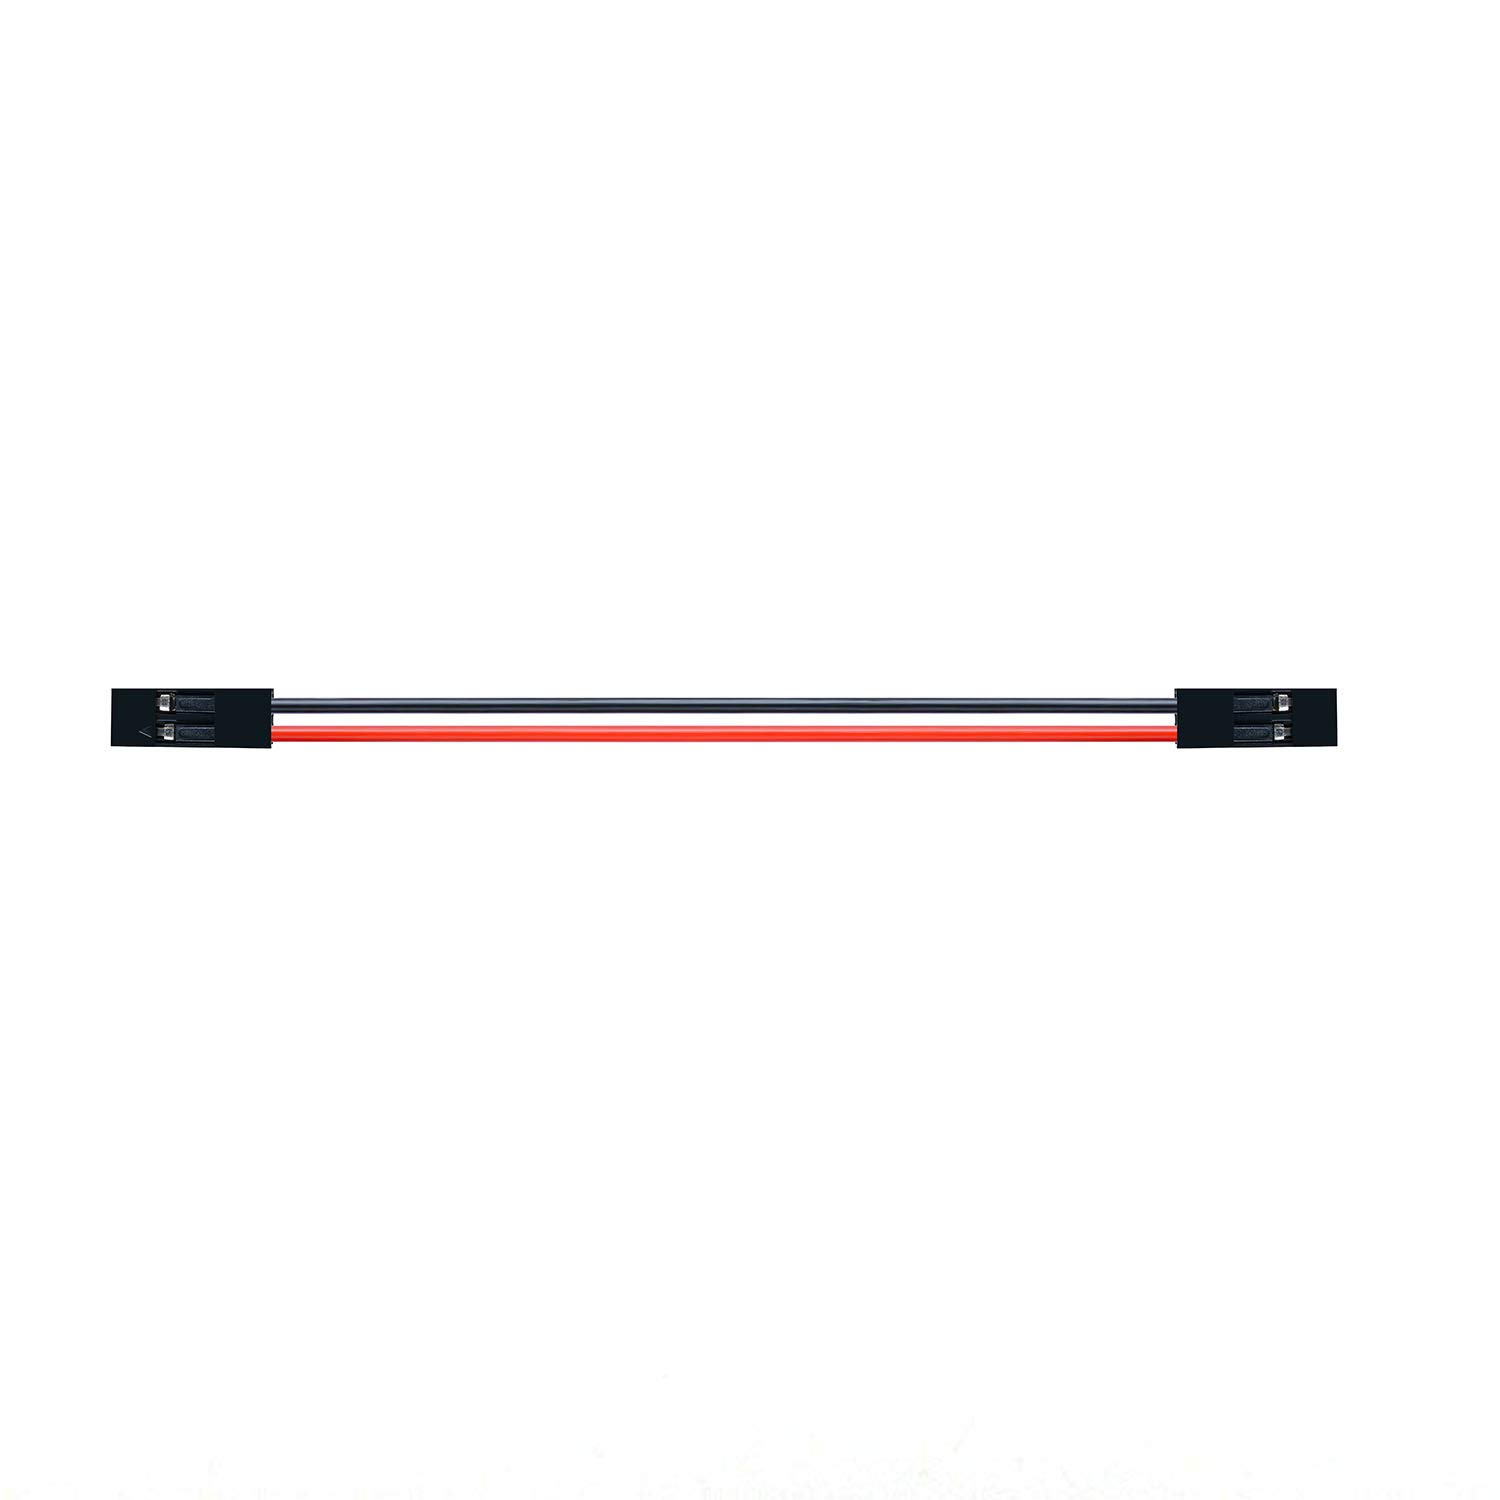 CQRobot Jumper Wire 2-pin 2.54-Pitch 200mm, Dupont Line, Adapter Cable, Connector of 2-pin Dual-Female, Pitch of 2.54mm, Length of 200mm.